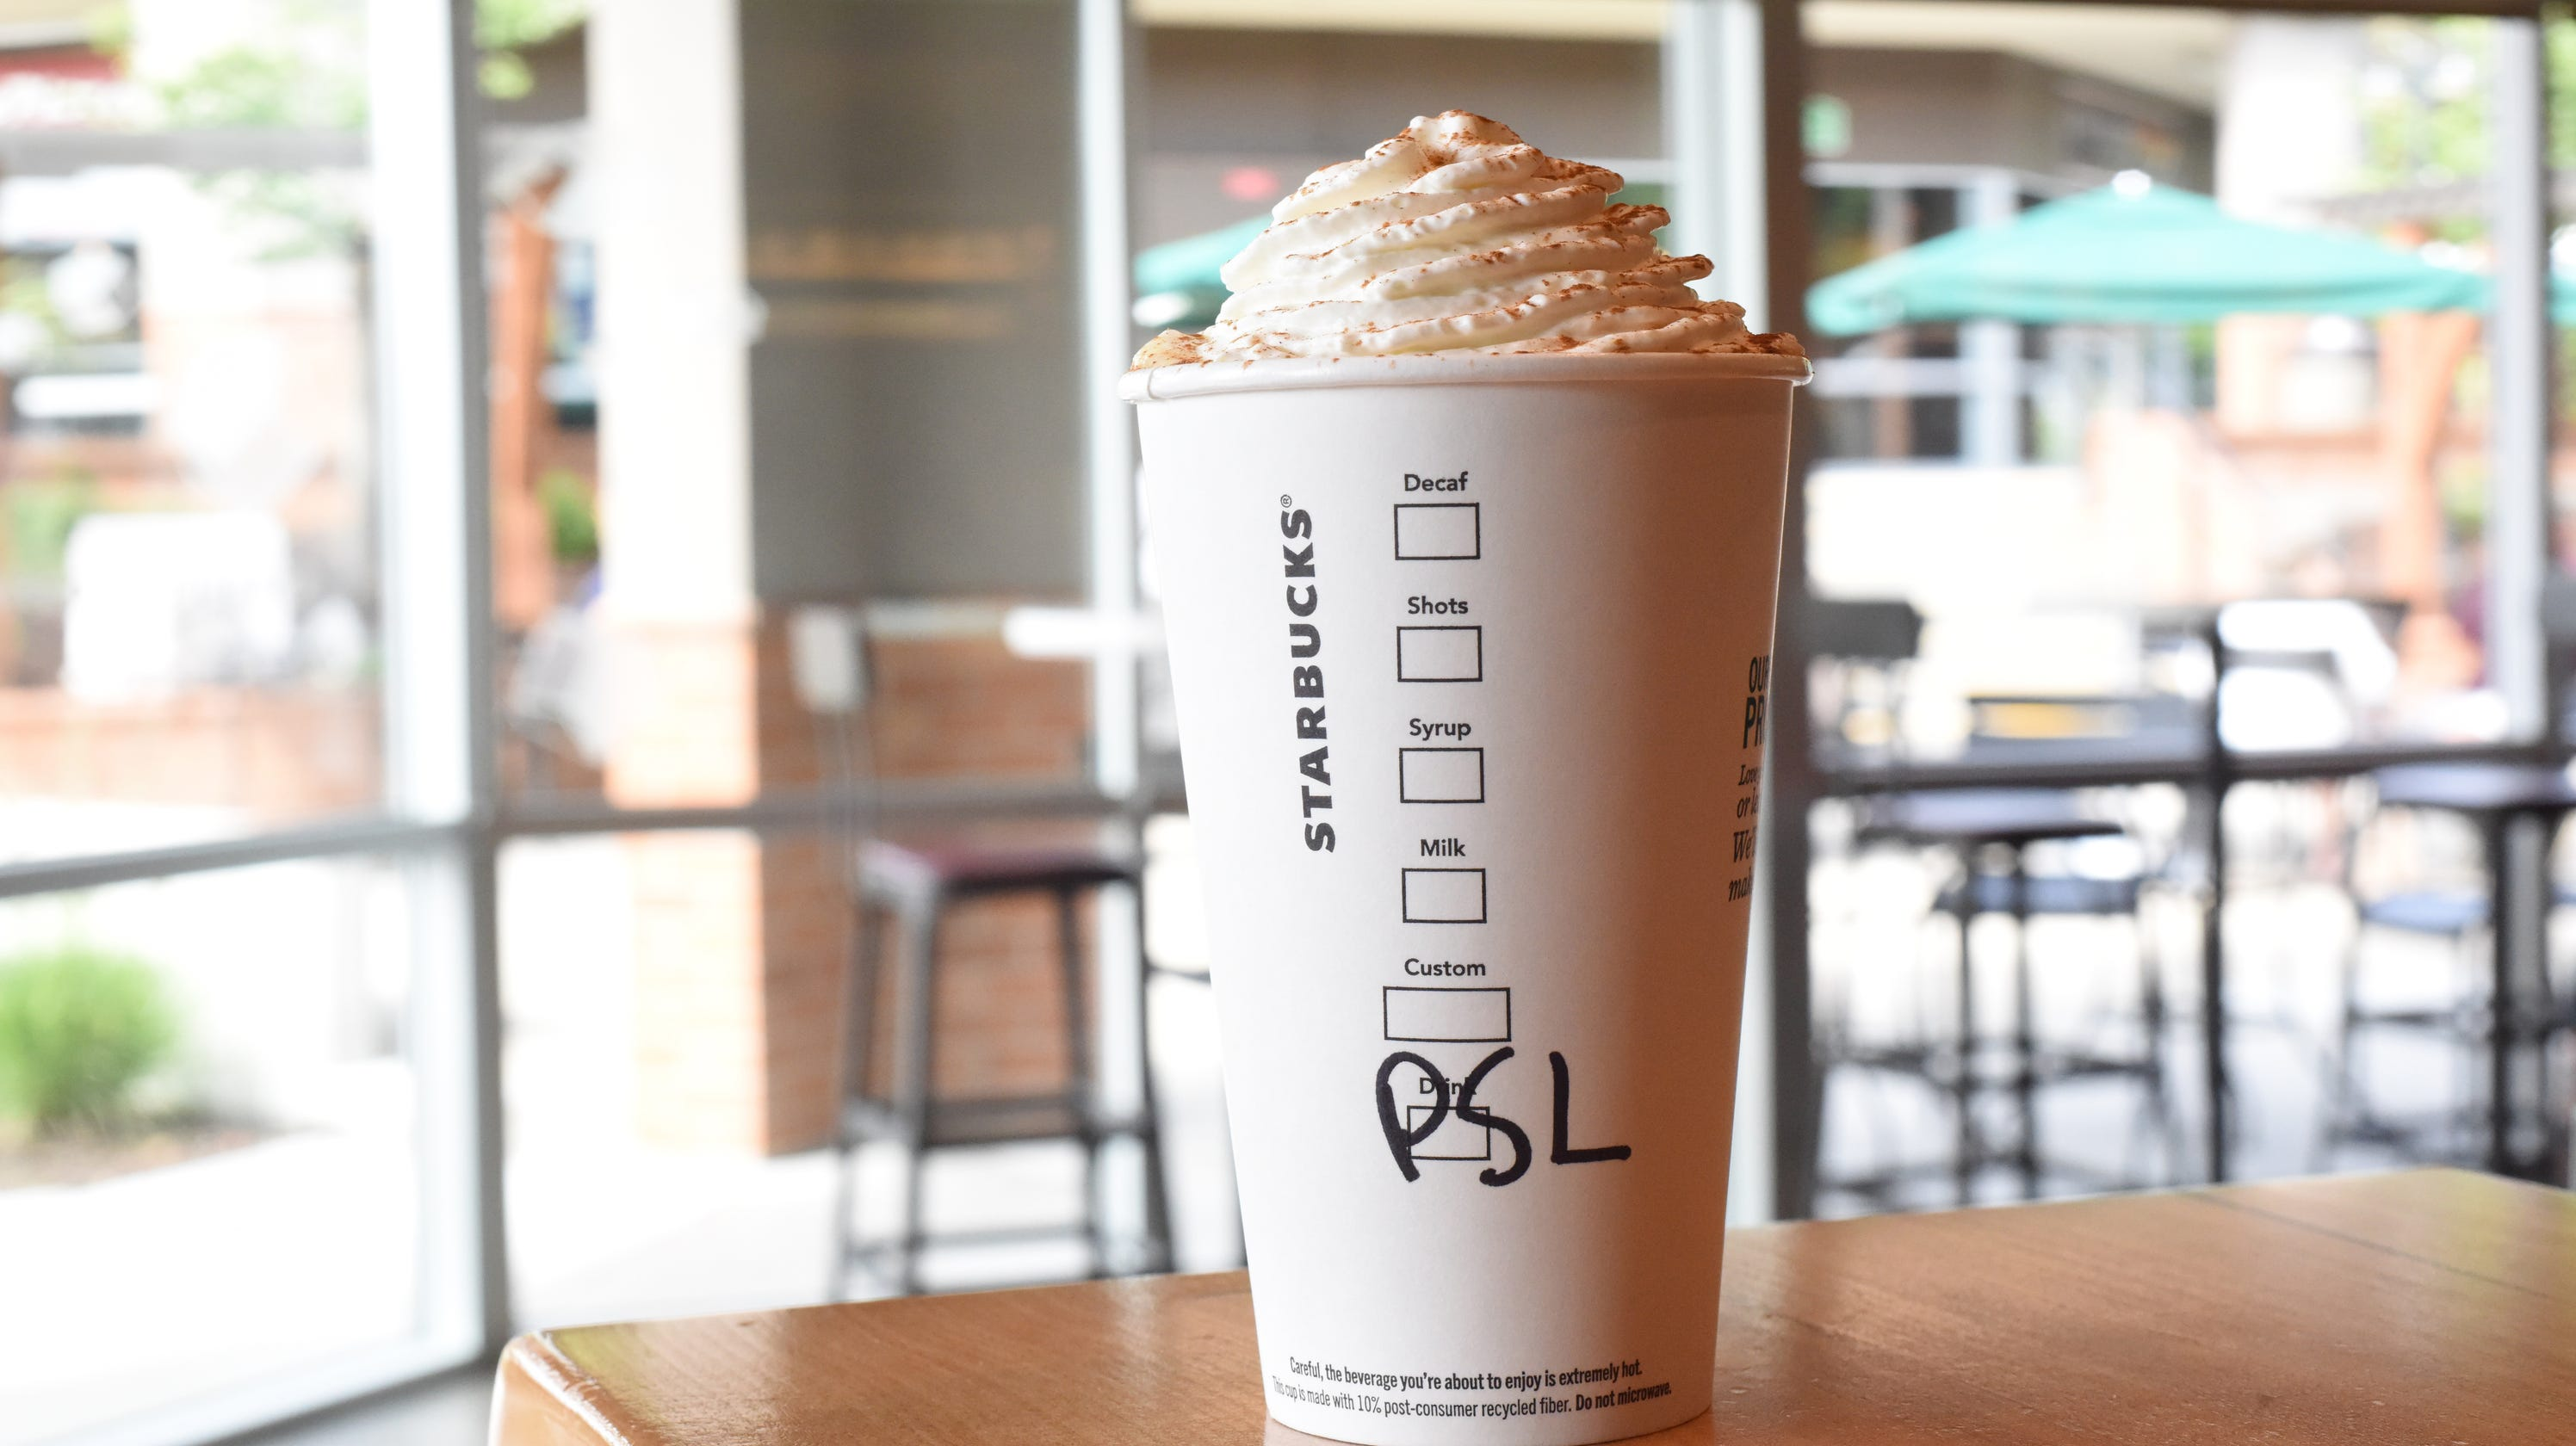 Skinny Pumpkin Spice Latte How To Order Or Make One